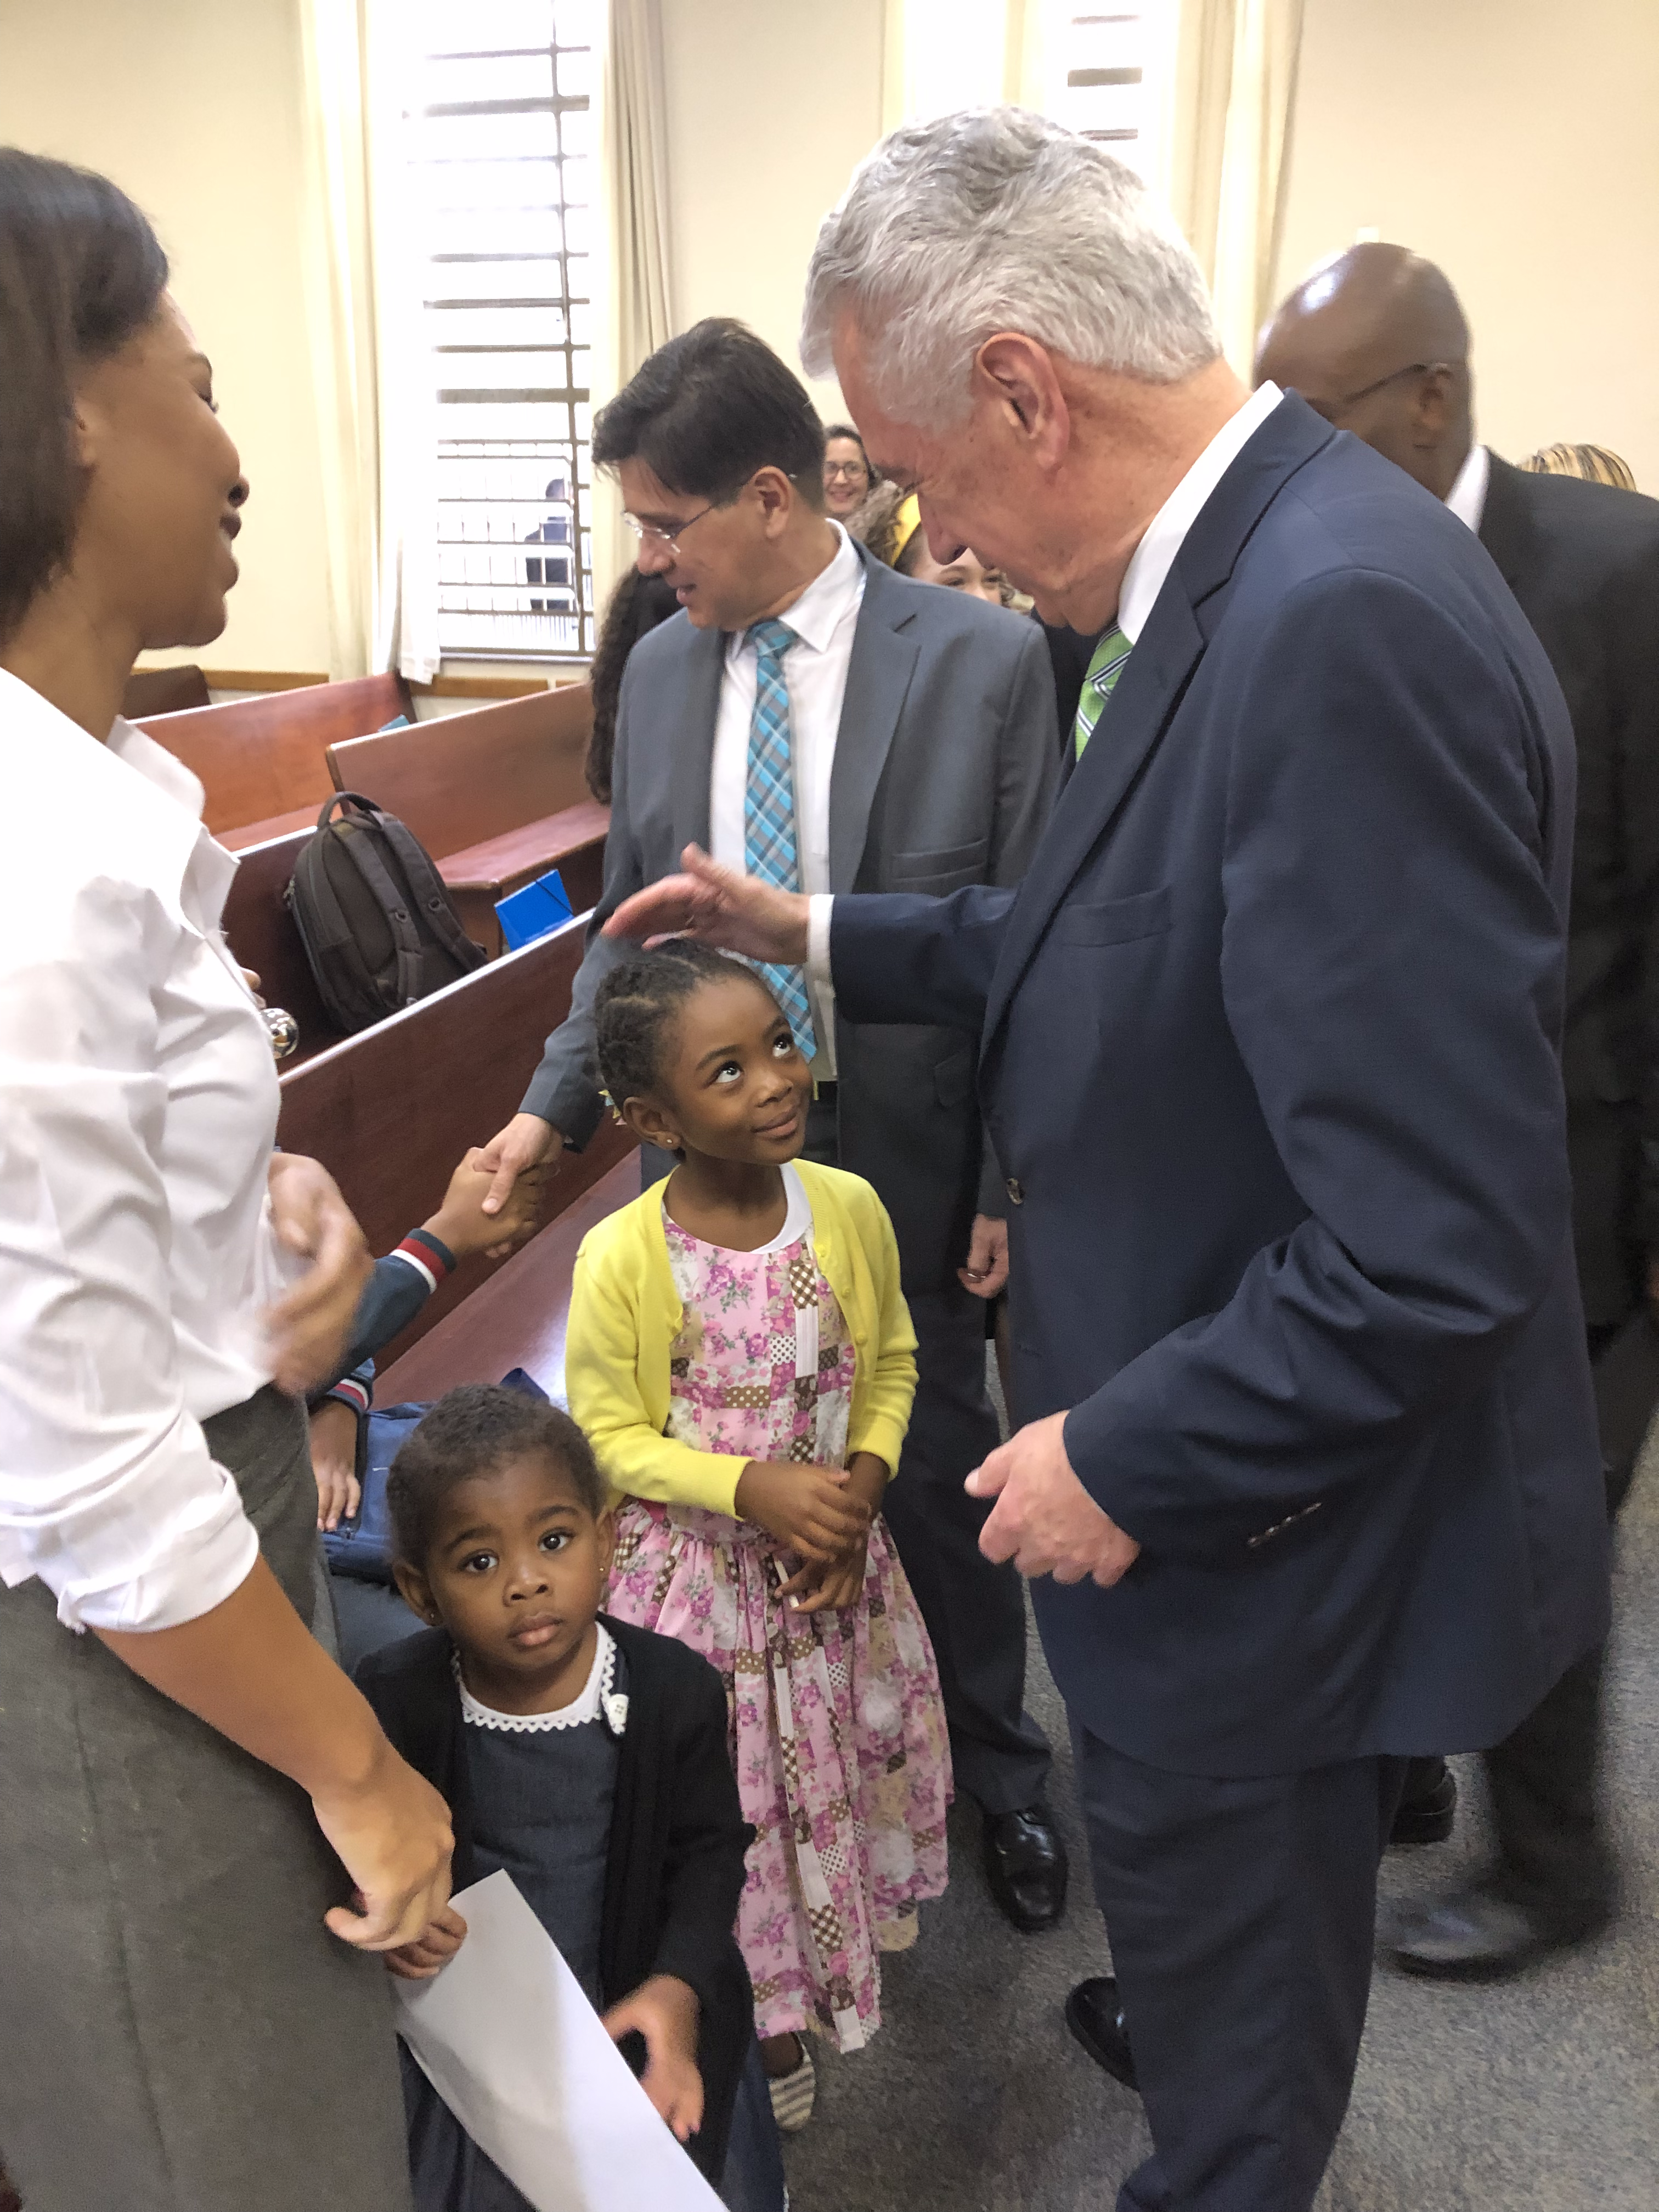 Elder Dieter F. Uchtdorf of the Quorum of the Twelve Apostles greets Melissa de Souza Sabino Ferreira, the daughter of President Paulo Ferreira of the Sao Paulo Brazil Jaraguá Stake, after meetings on Sunday, Feb. 17. Standing nearby is her younger sister, Micaela de Souza Sabino Ferreira, and her mother, Regiane de Souza Sabino Ferreira, left.